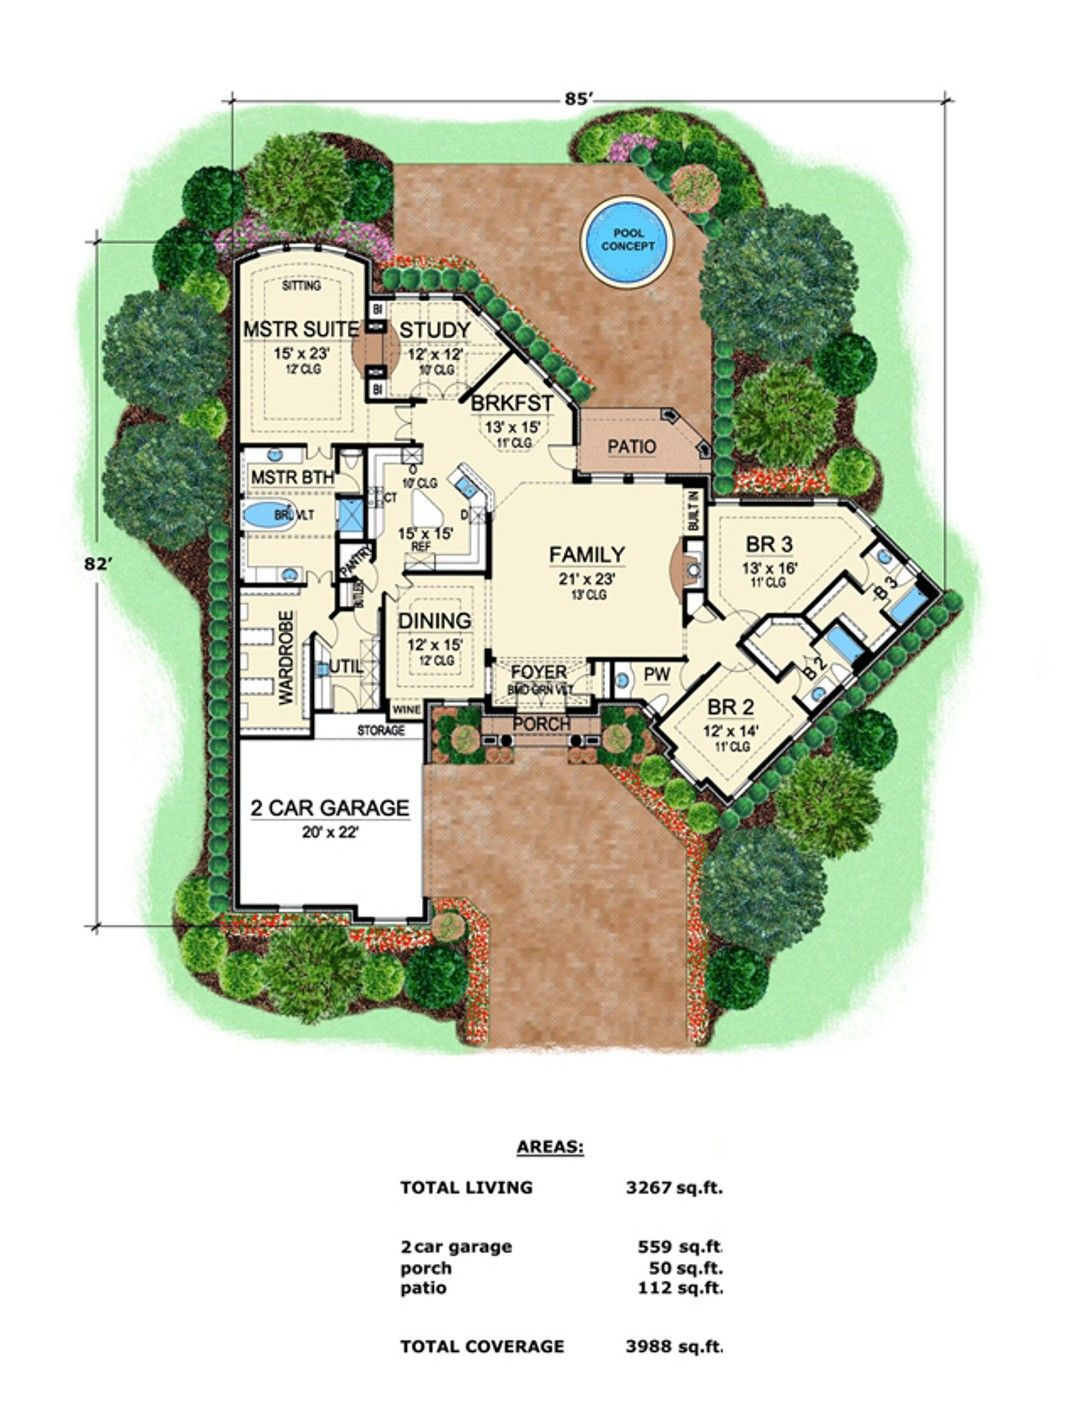 Hpm Home Plans Home Plan 015 1053 In 2021 One Level House Plans House Plans How To Plan